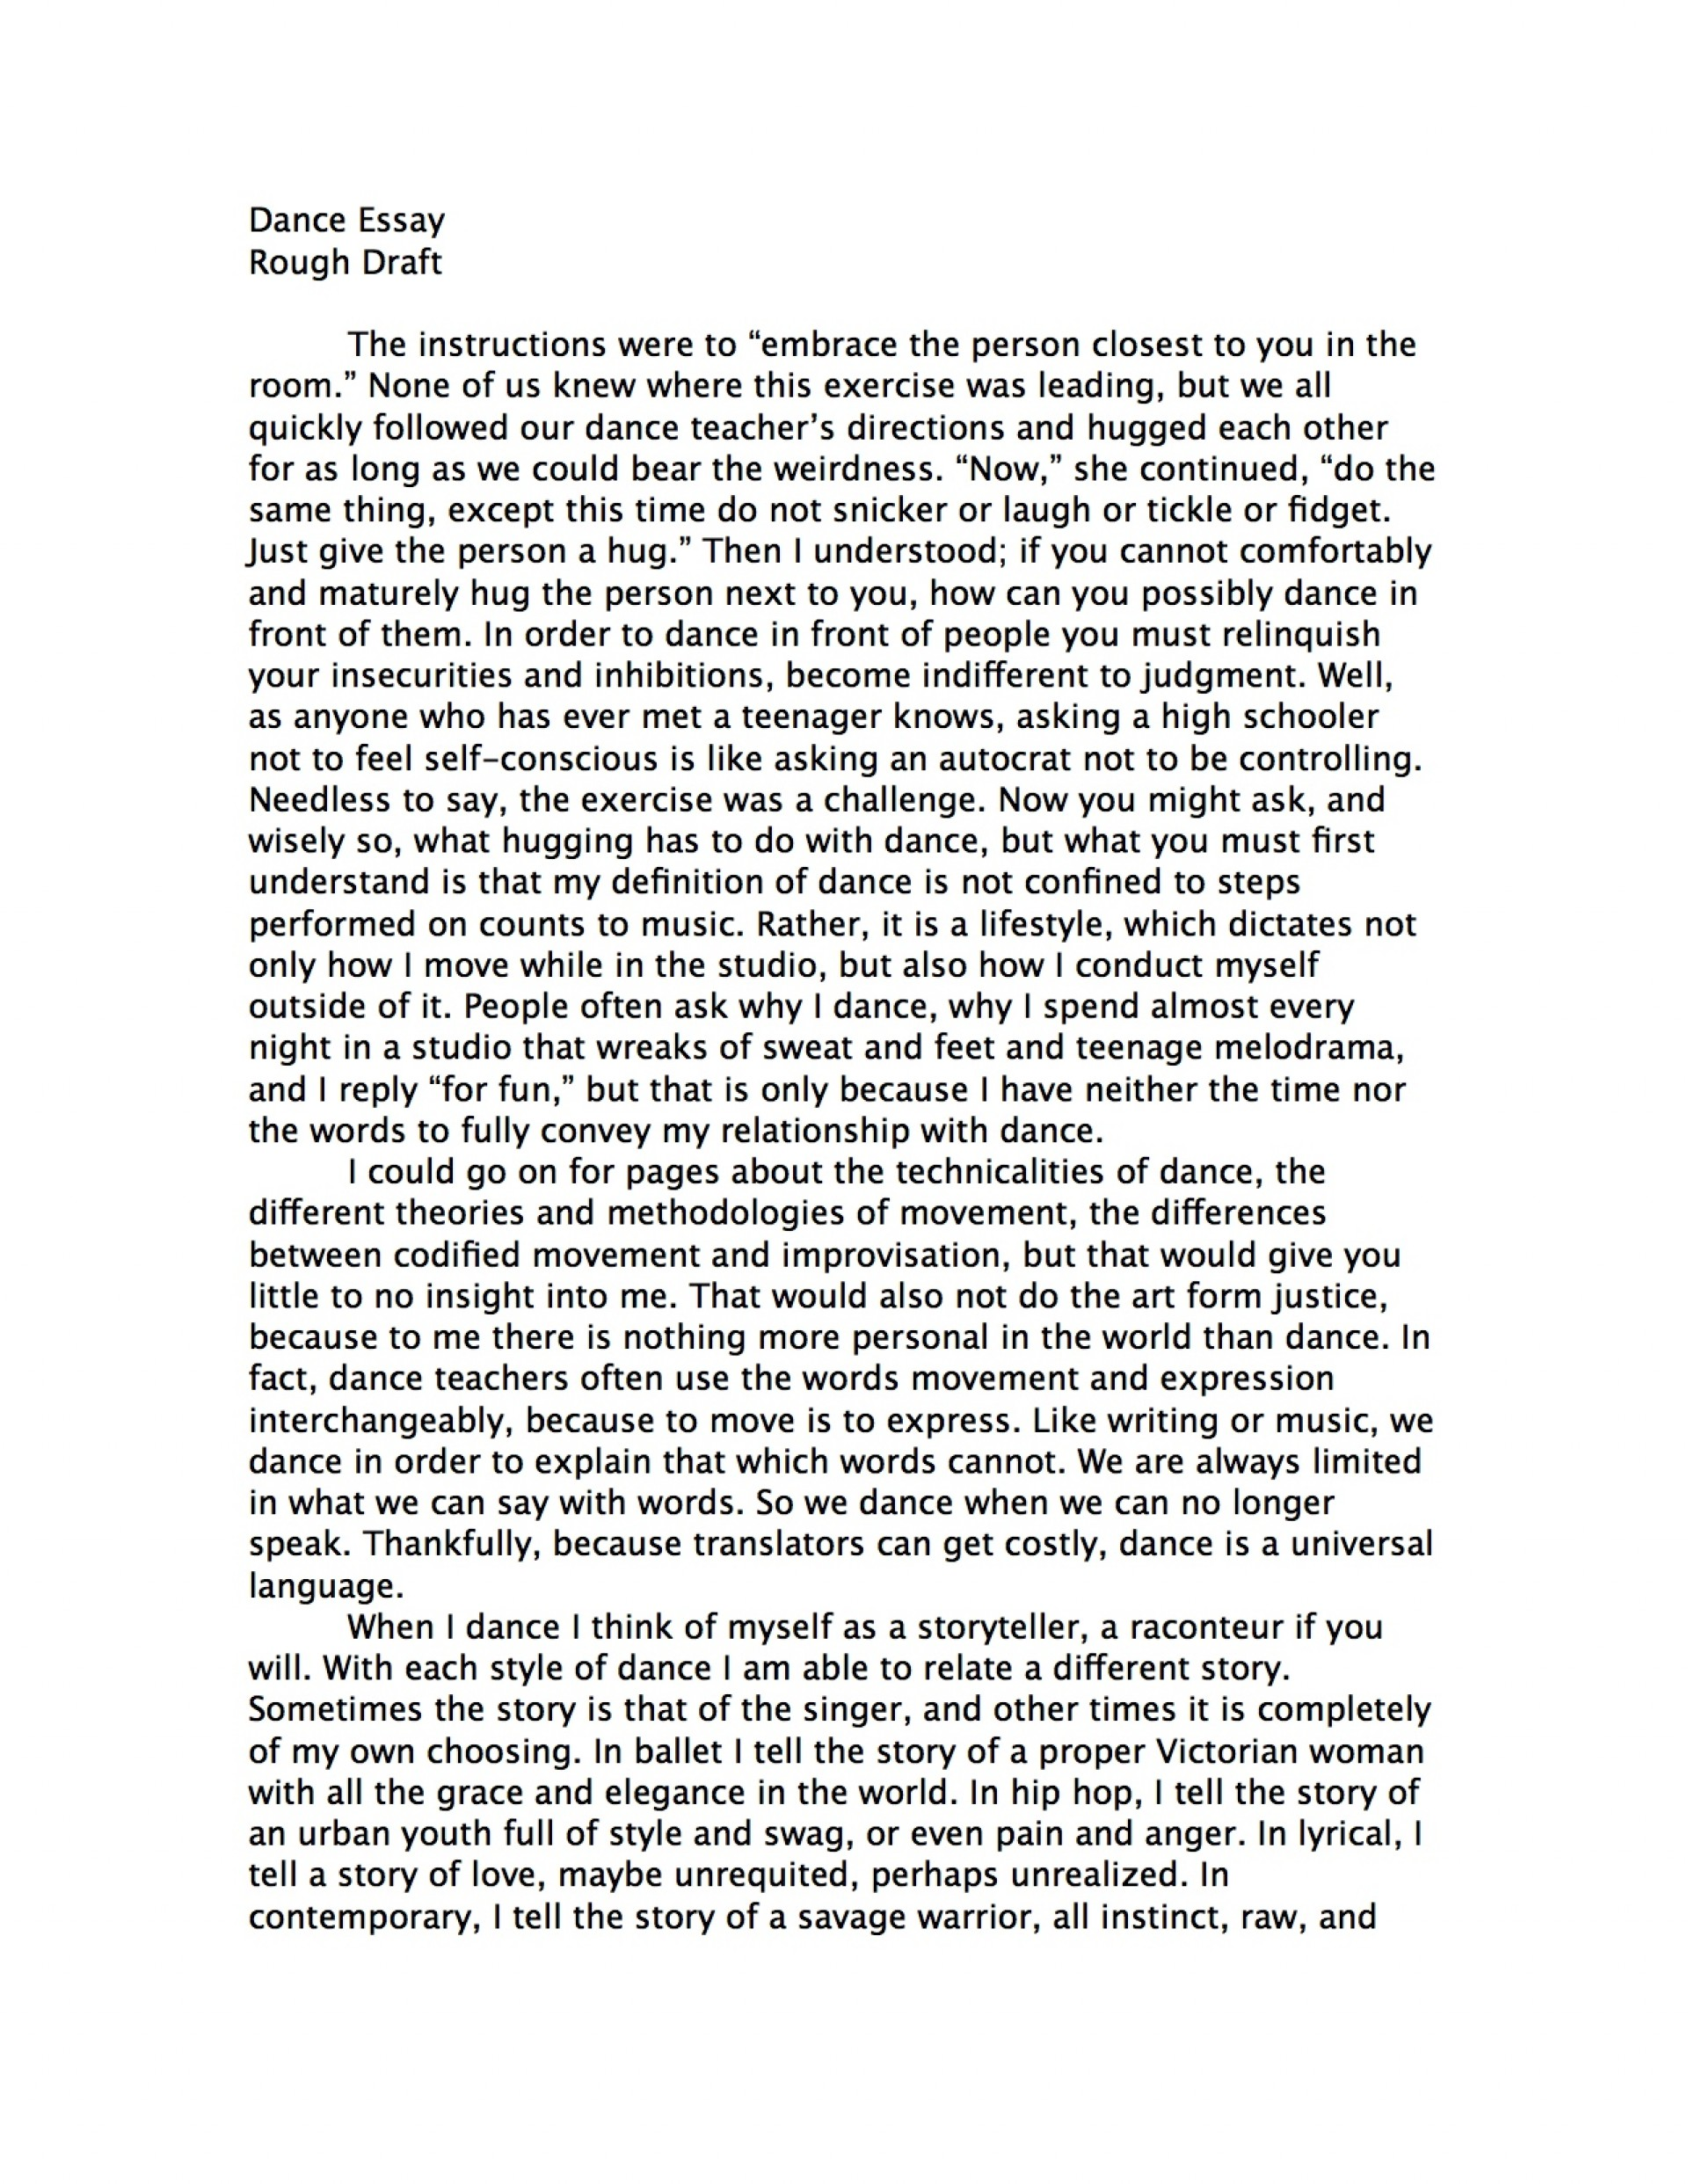 002 Essay Example How To Start Good Proposal Amazing College Essays Writing In About Failure Rebecca Nueman Dance Your Background Yourself Hook Off Examples Prompt Awesome A Paper For Introduction Biography 1920